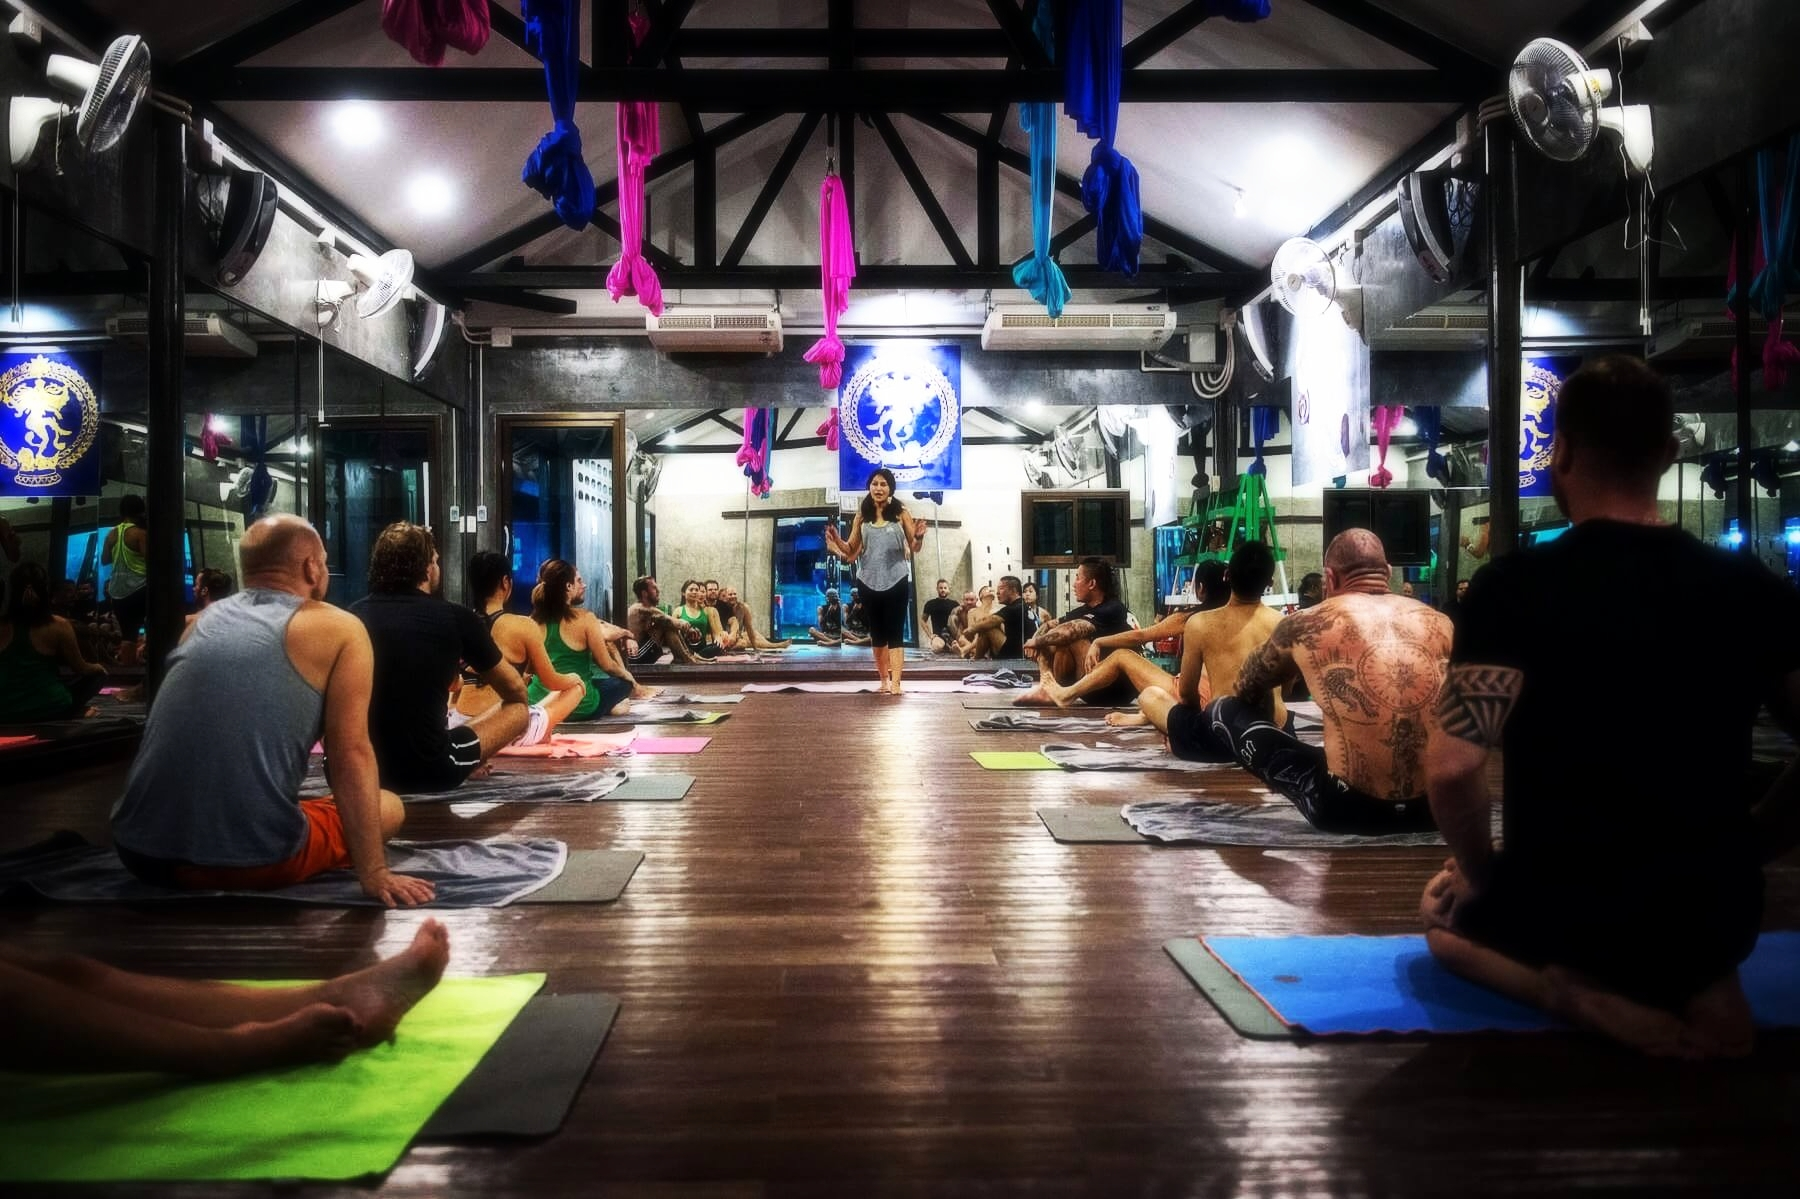 Hot Yoga for Muay Thai Fighters in Phuket Thailand, Hot Yoga for crossfit in Thailand, 5 Elements Hot Yoga Phuket, Chalong Thailand.